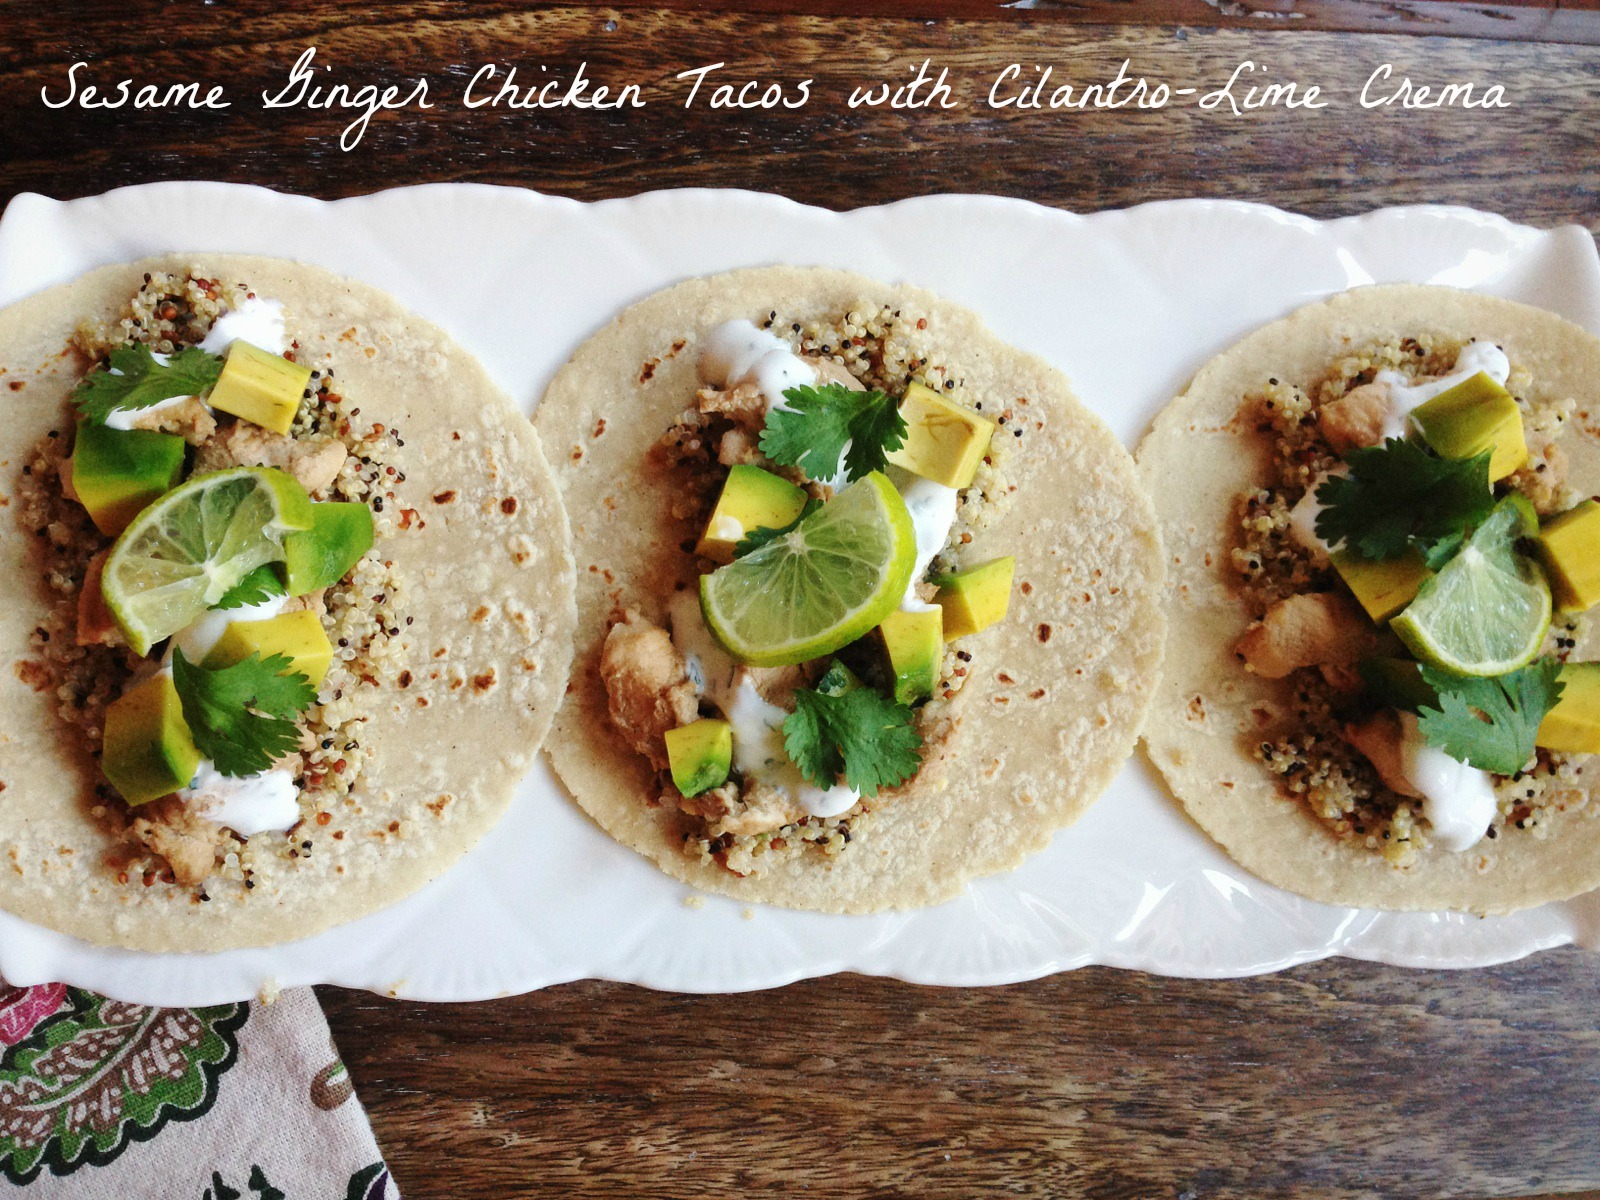 Sesame-Ginger Chicken Tacos with Cilantro-Lime Crema